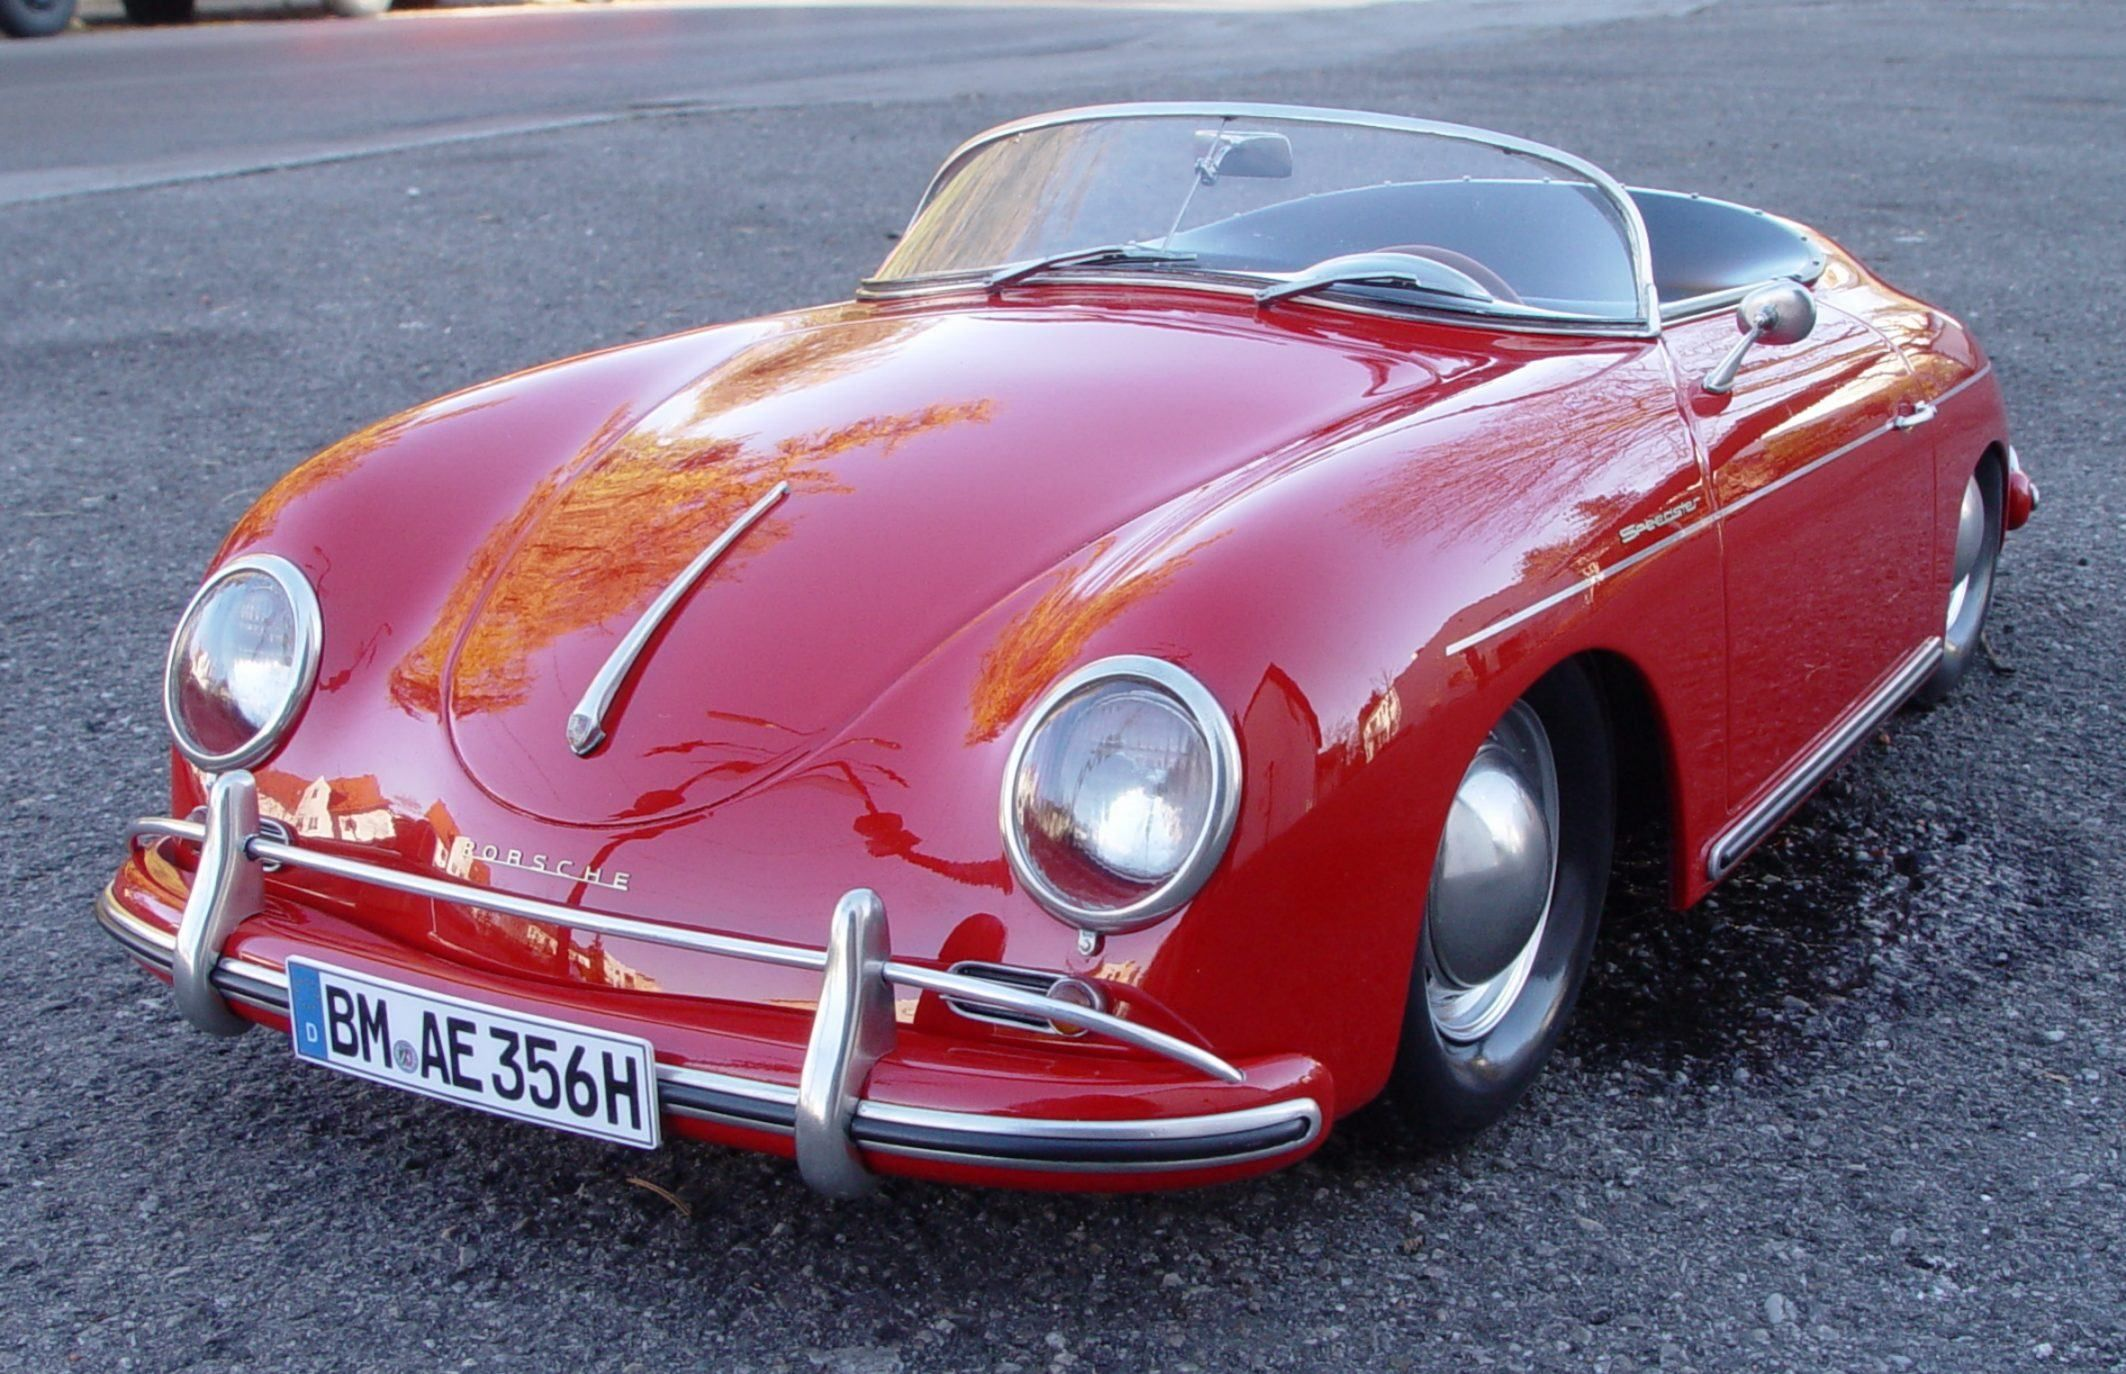 Porsche 356 Speedster The Very First Porsche Based On